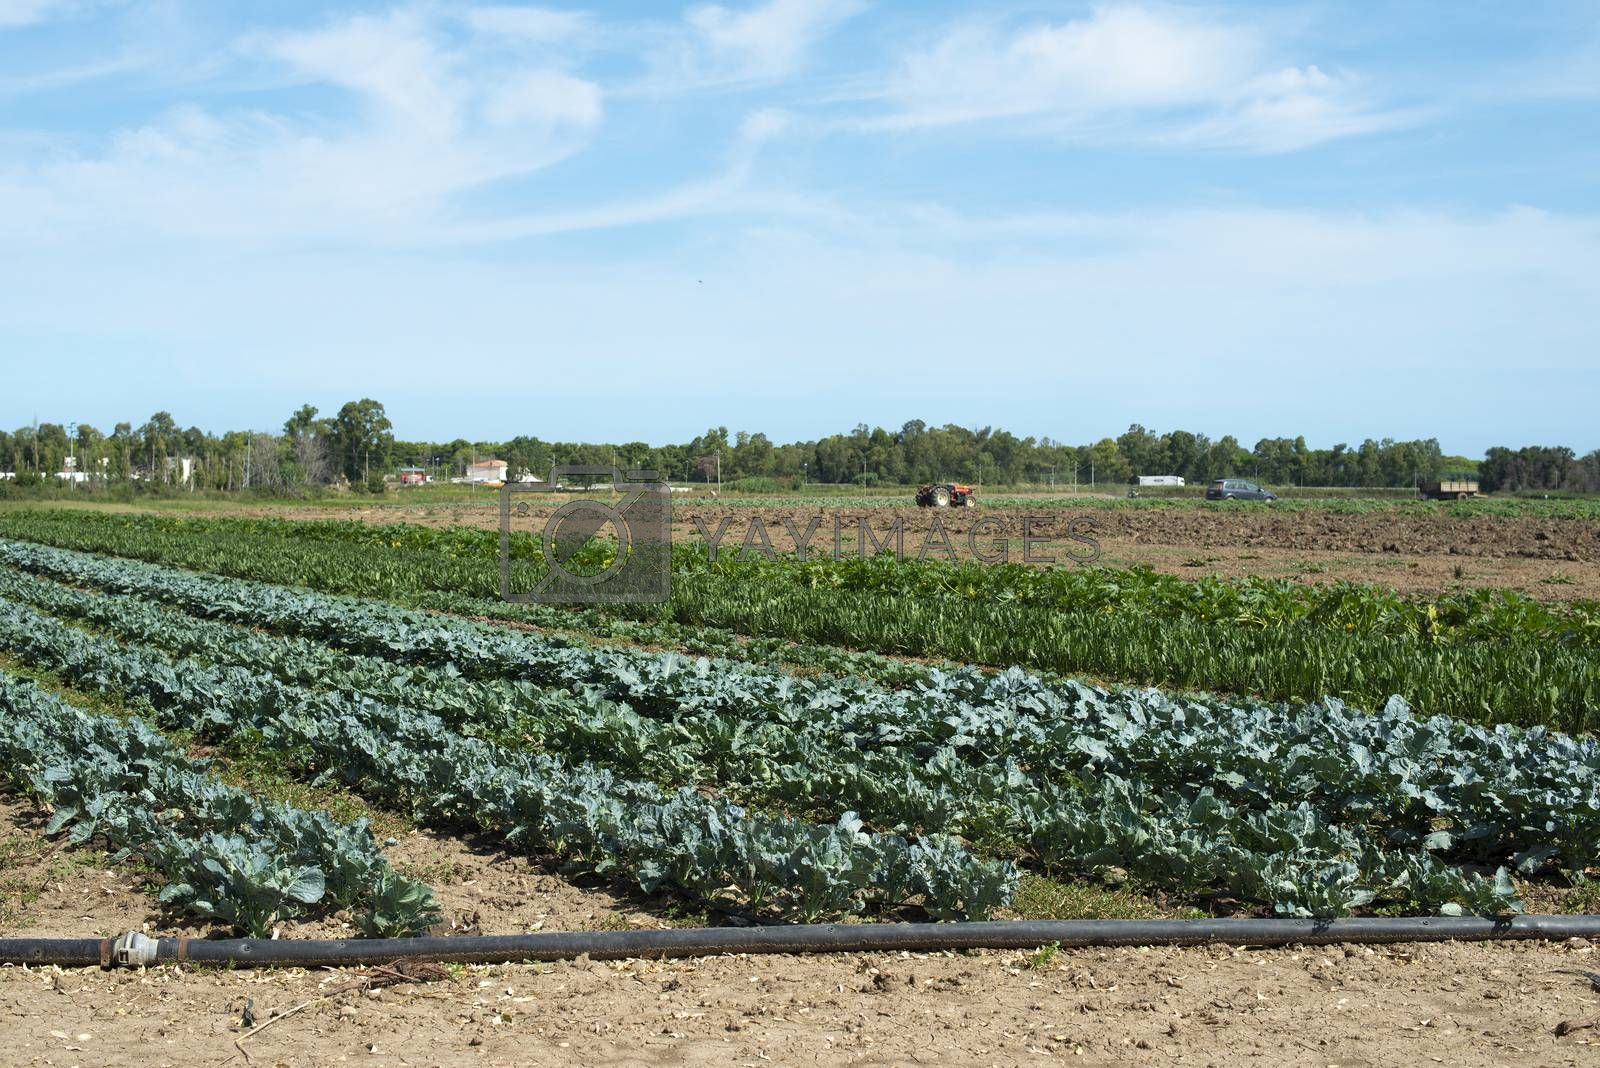 Big vegetable plantation. Industrial plantation with green plants in rows. Variety of vegetables in farm.